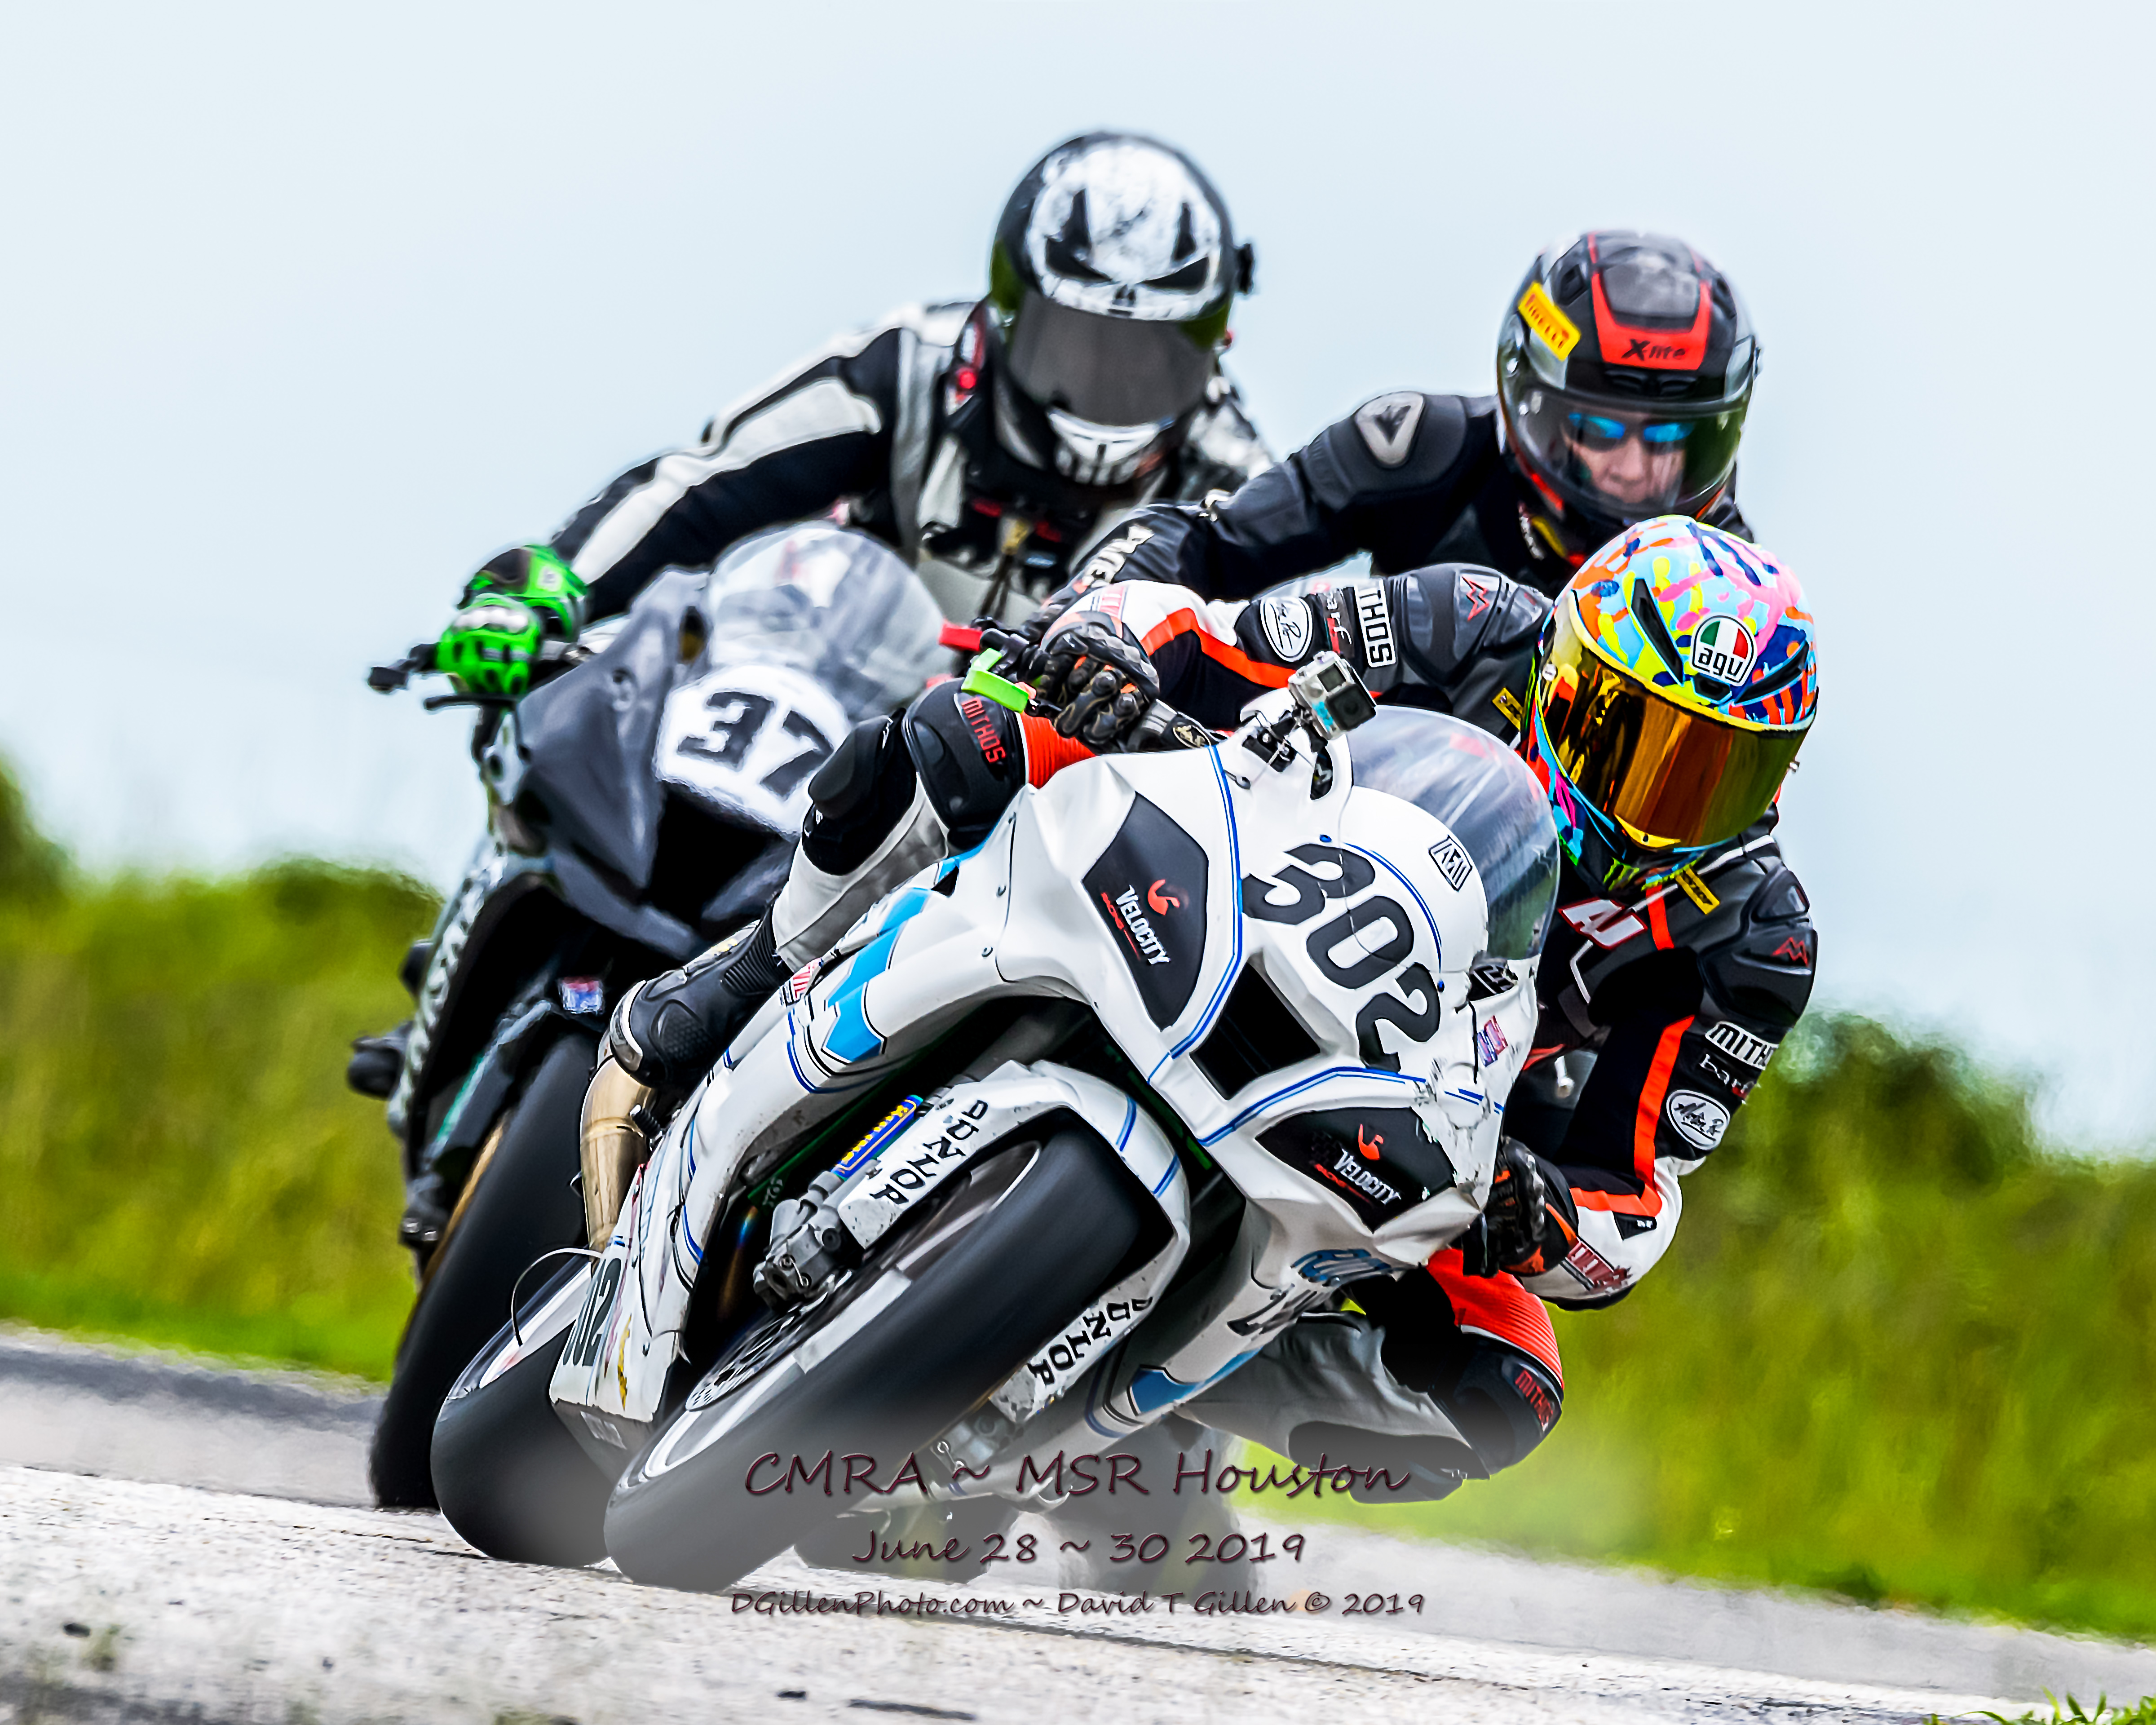 RiderzLaw Motorcycle Racing leads the pack during another CMRA race